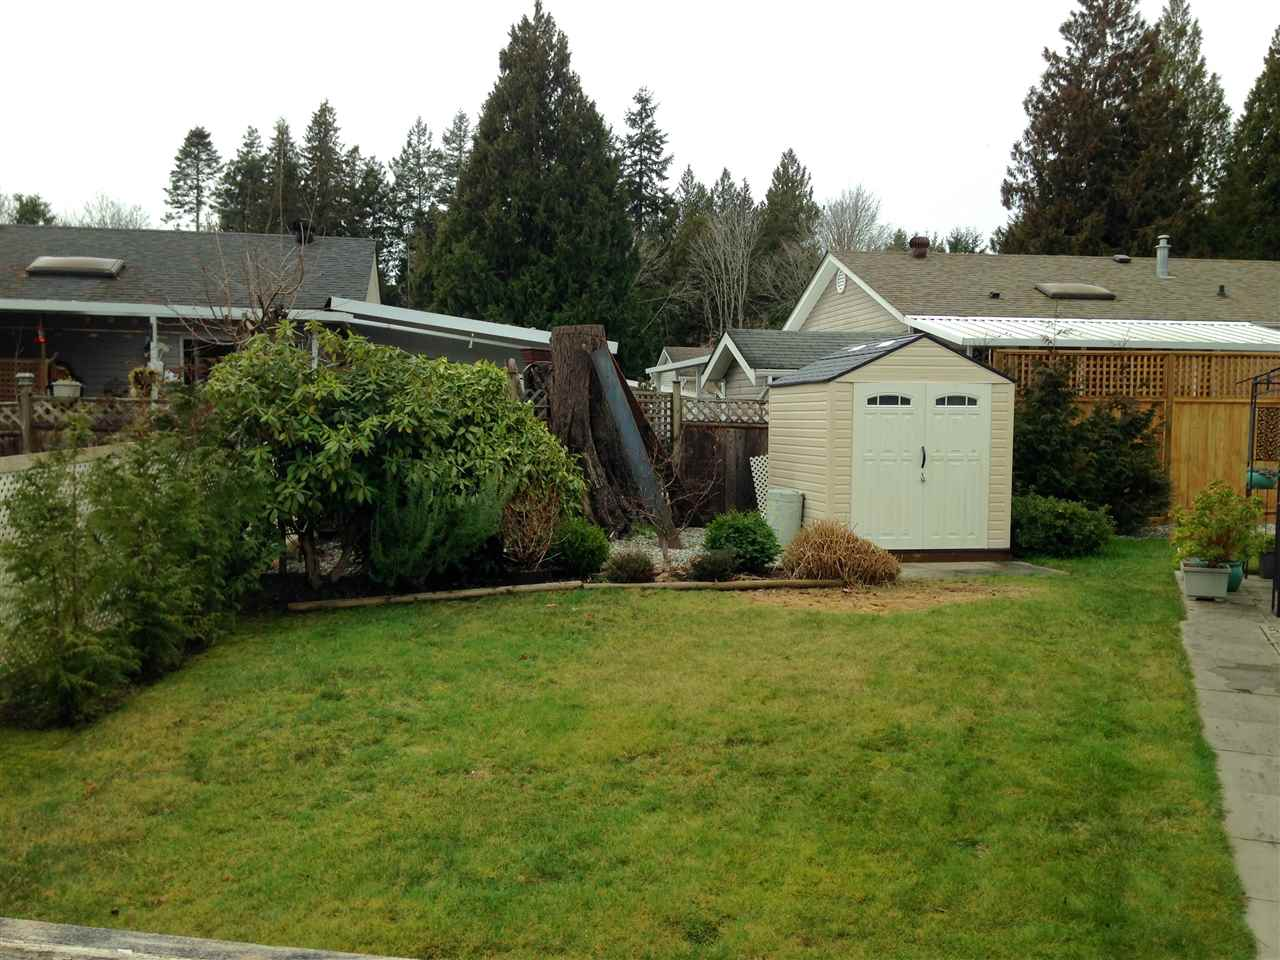 Photo 13: Photos: 14 4496 SUNSHINE COAST Highway in Sechelt: Sechelt District Manufactured Home for sale (Sunshine Coast)  : MLS® # R2032496